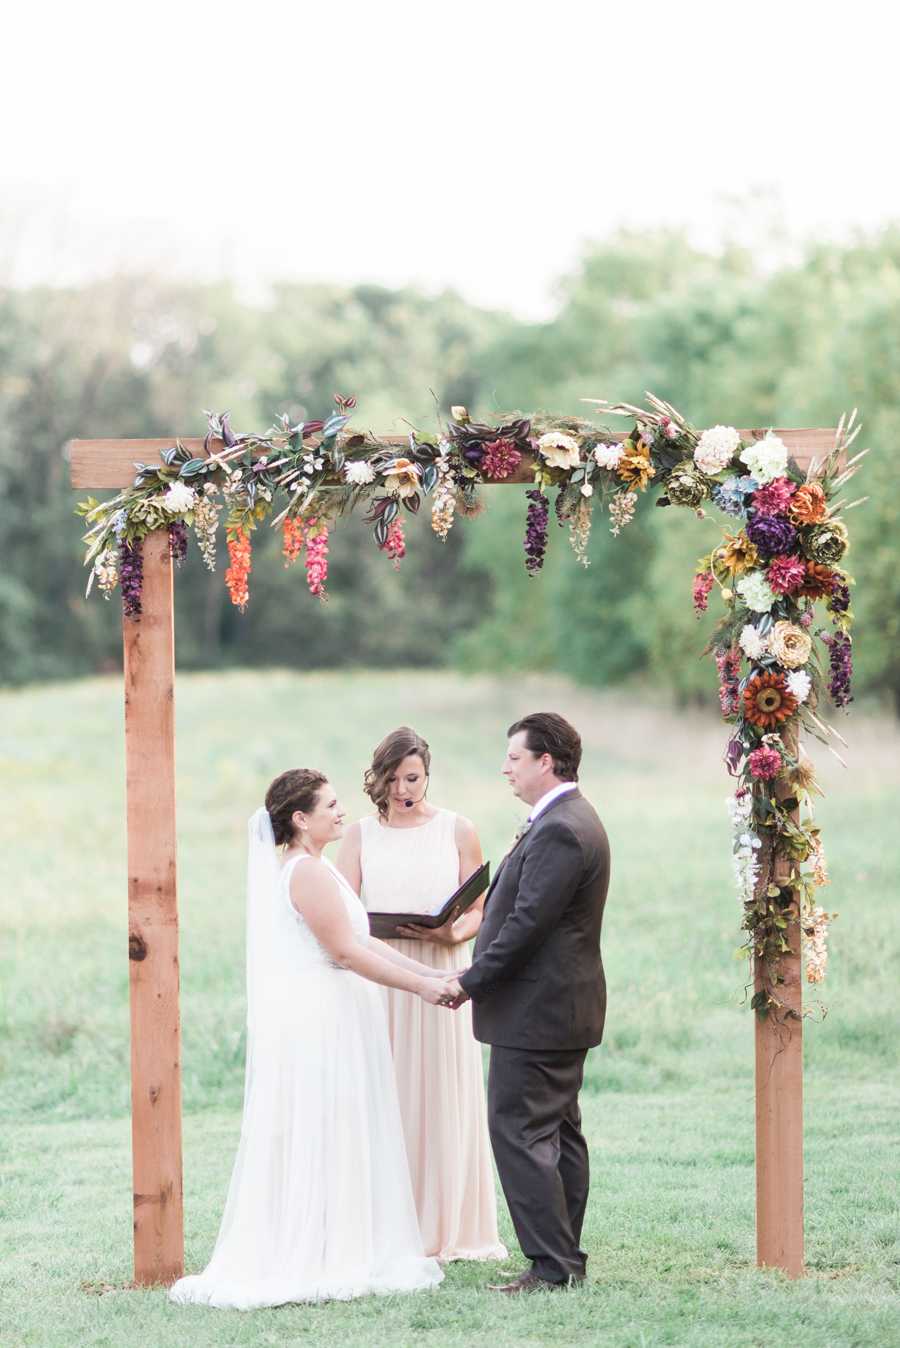 homegrown-illinois-backyard-diy-farm-wedding-waydown-wanderers-by-two-birds-photography044